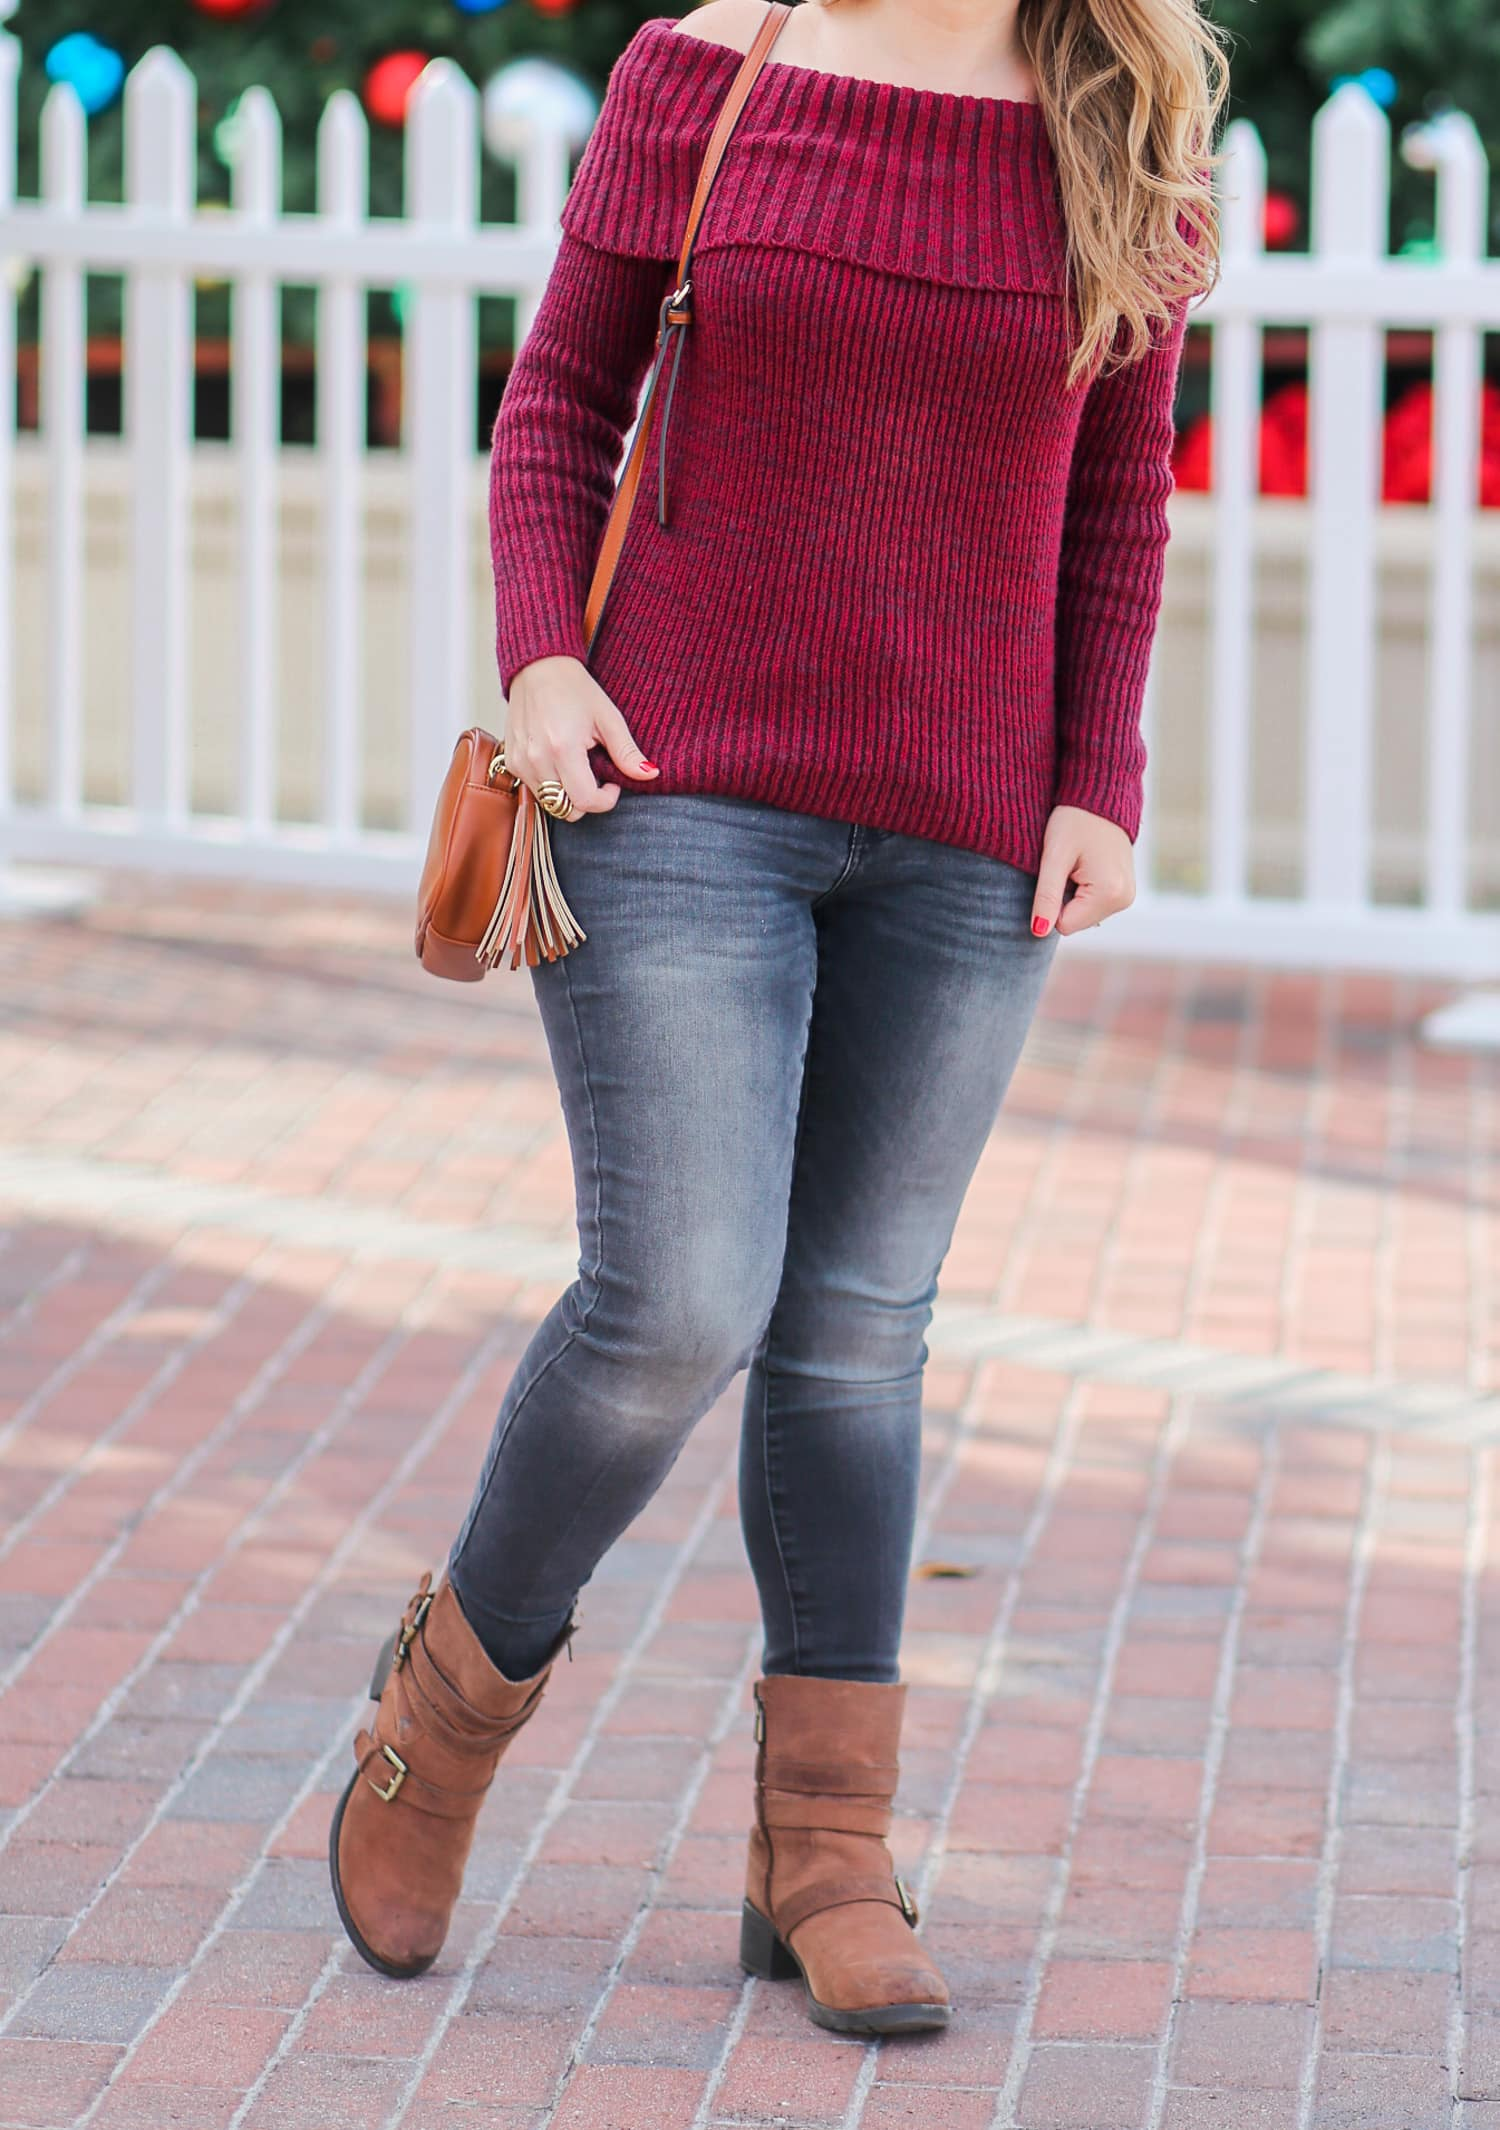 casual-winter-outfit-off-the-shoulder-sweater-gray-jeggins-moto-boots-foster-grant-rose-gold-aviator-sunglasses-7674-2